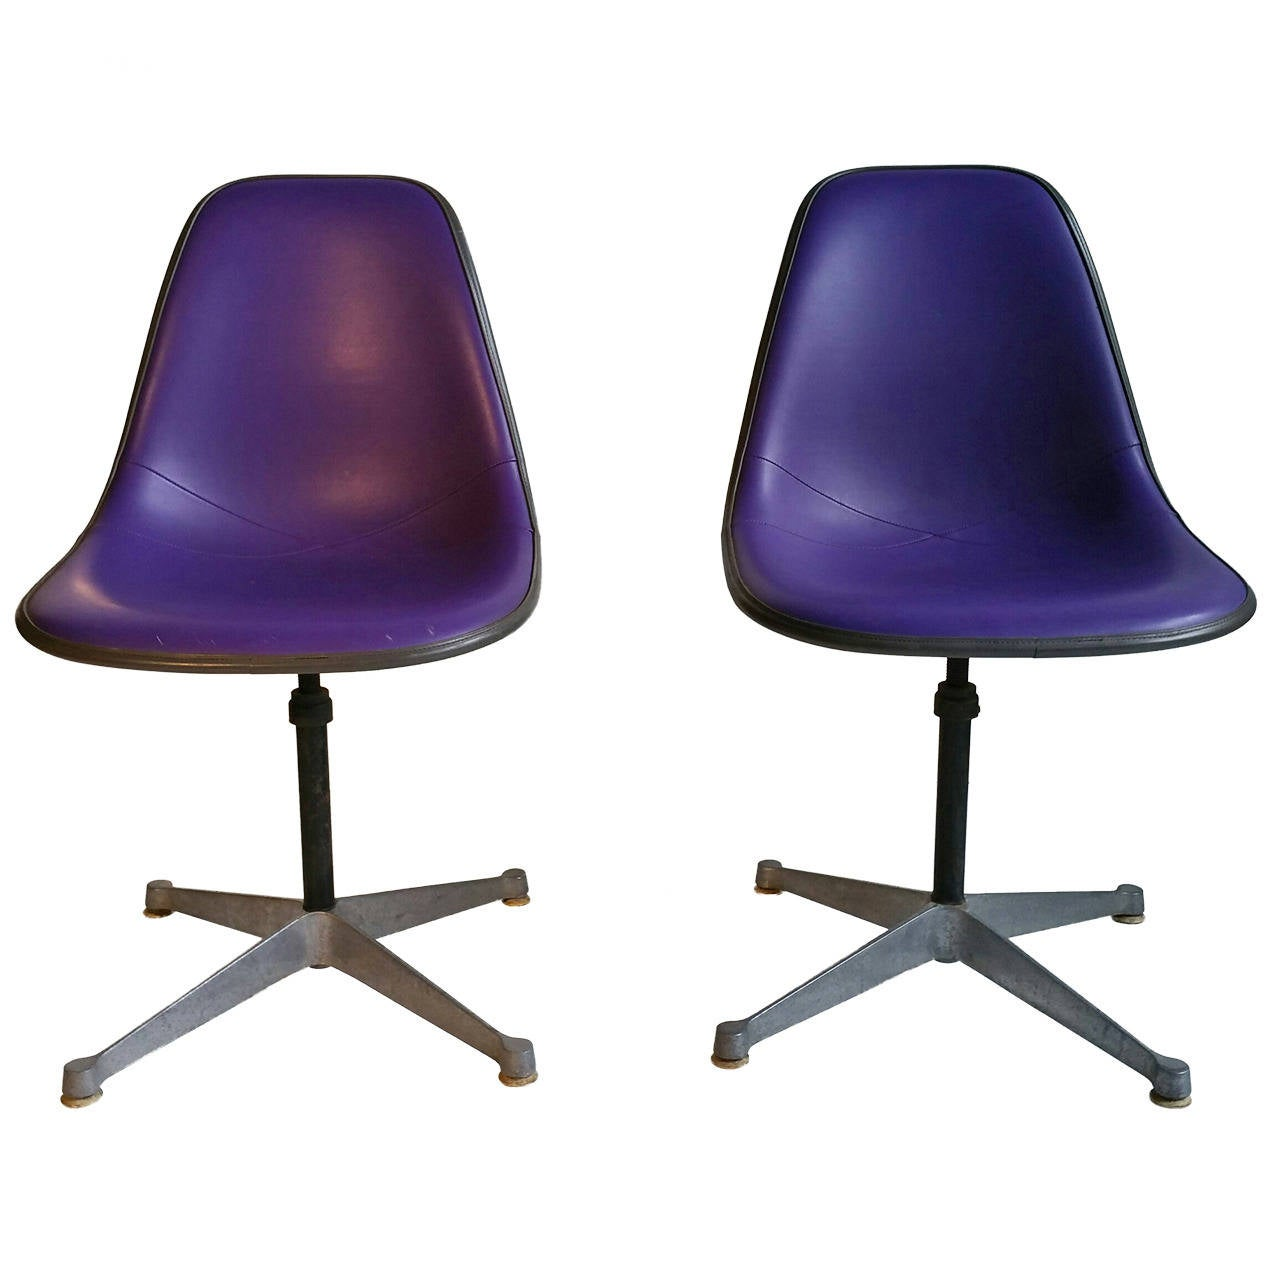 Pair of Charles and Ray Eames Adjustable Swivel Chairs 1